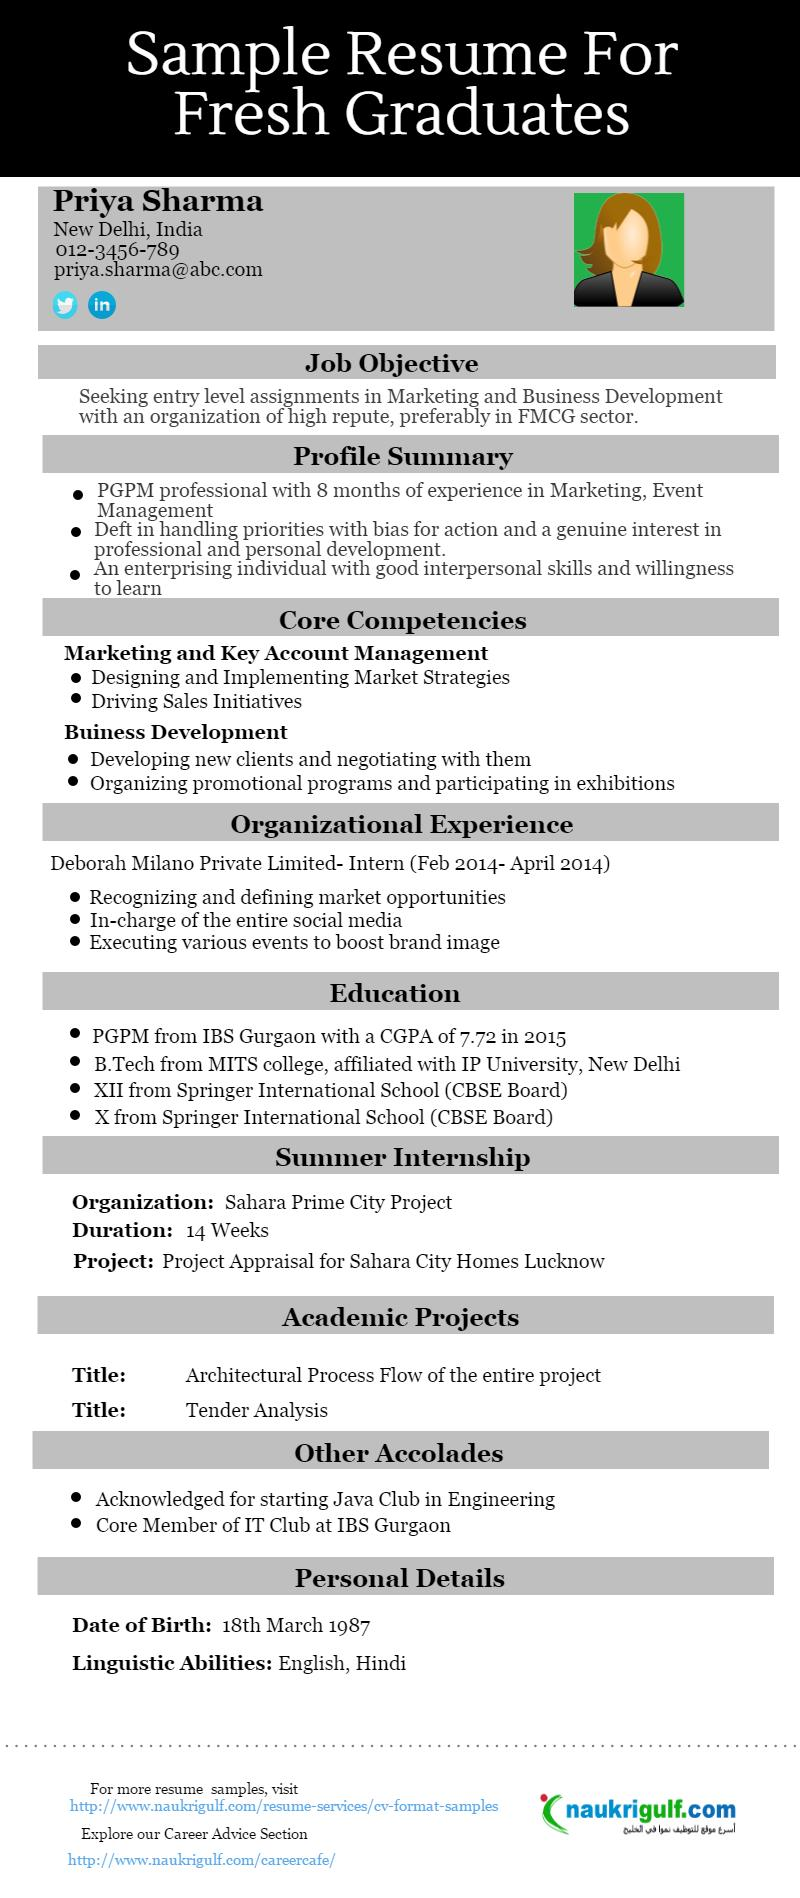 examples of resumes for fresh graduates